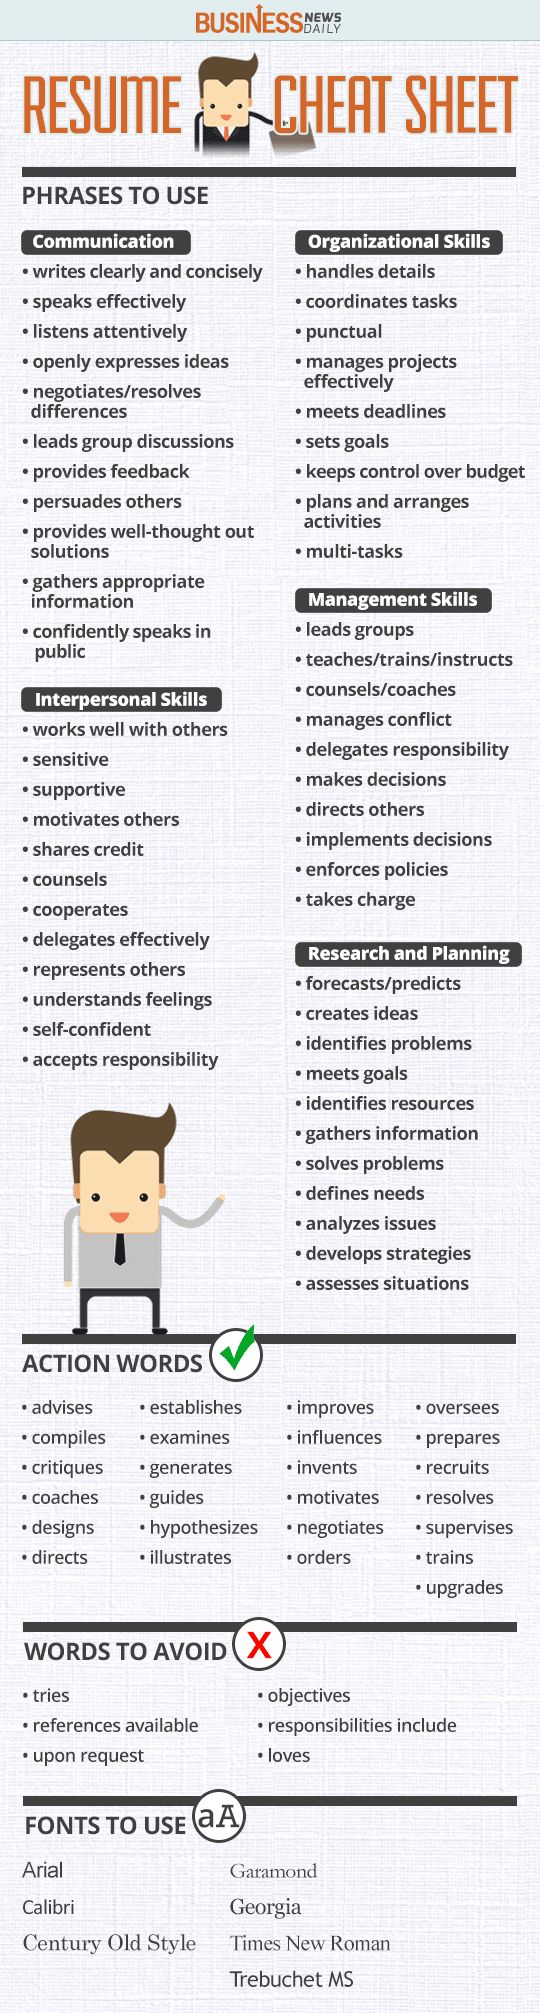 Tips On Making A Resume 119 Best Job Resume Images On Pinterest  Gym Career And Productivity